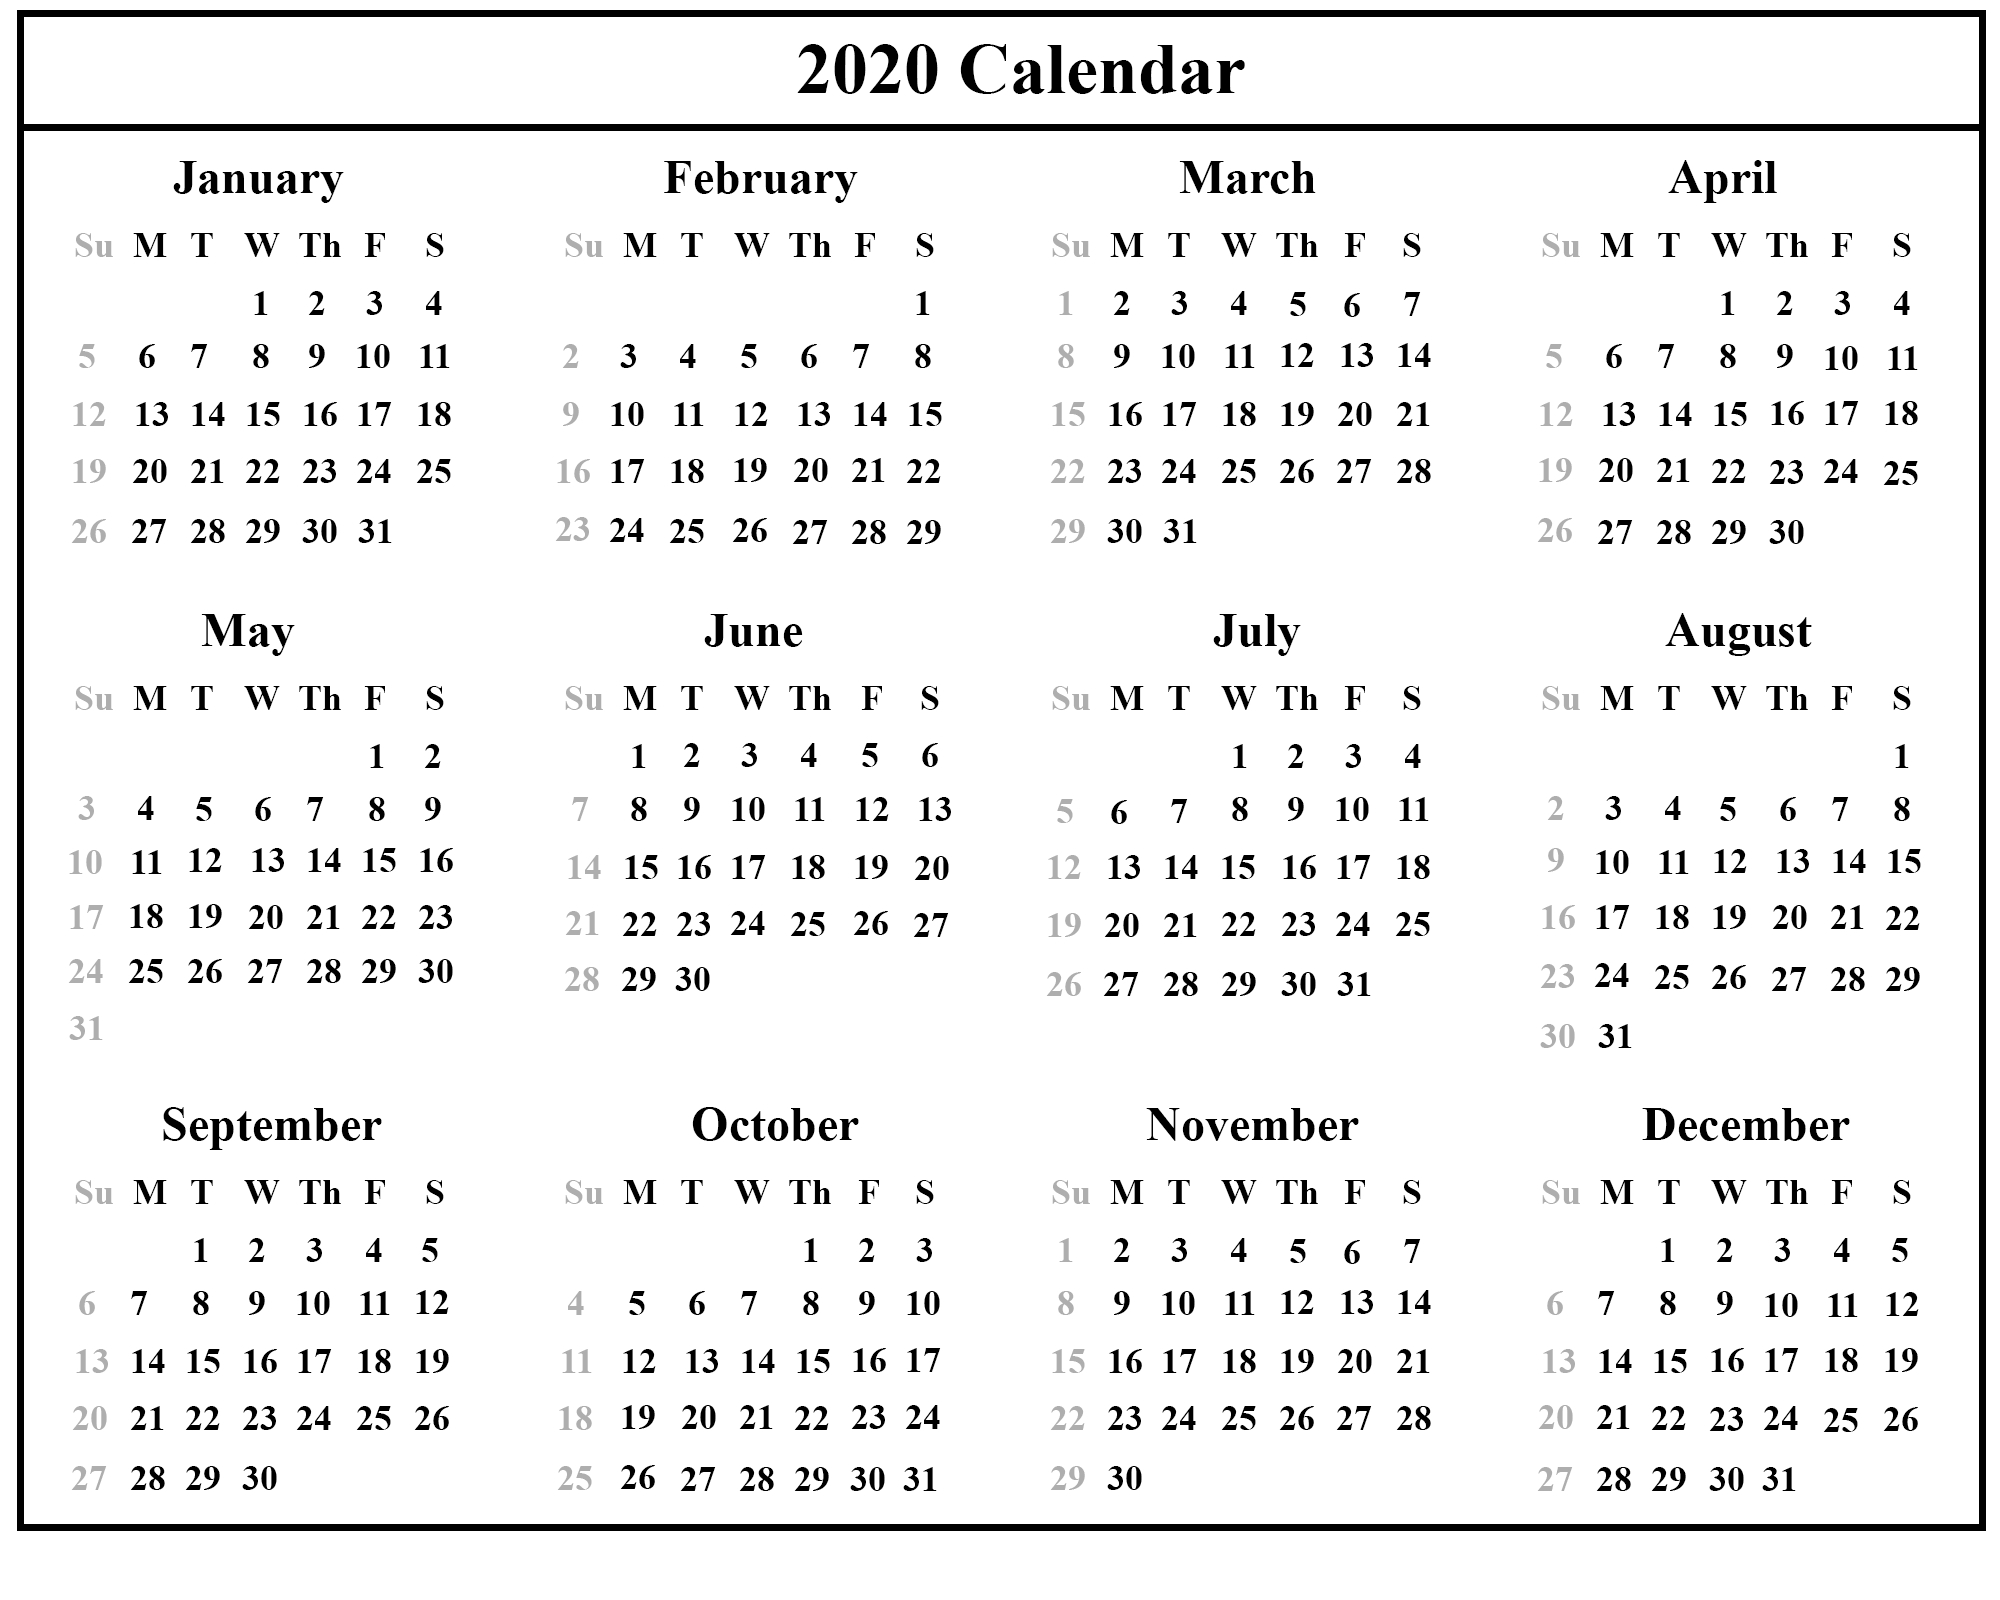 Free Printable Australia Calendar 2020 In Pdf, Excel & Word Format pertaining to Free 2020 Printable Pocket Calendar